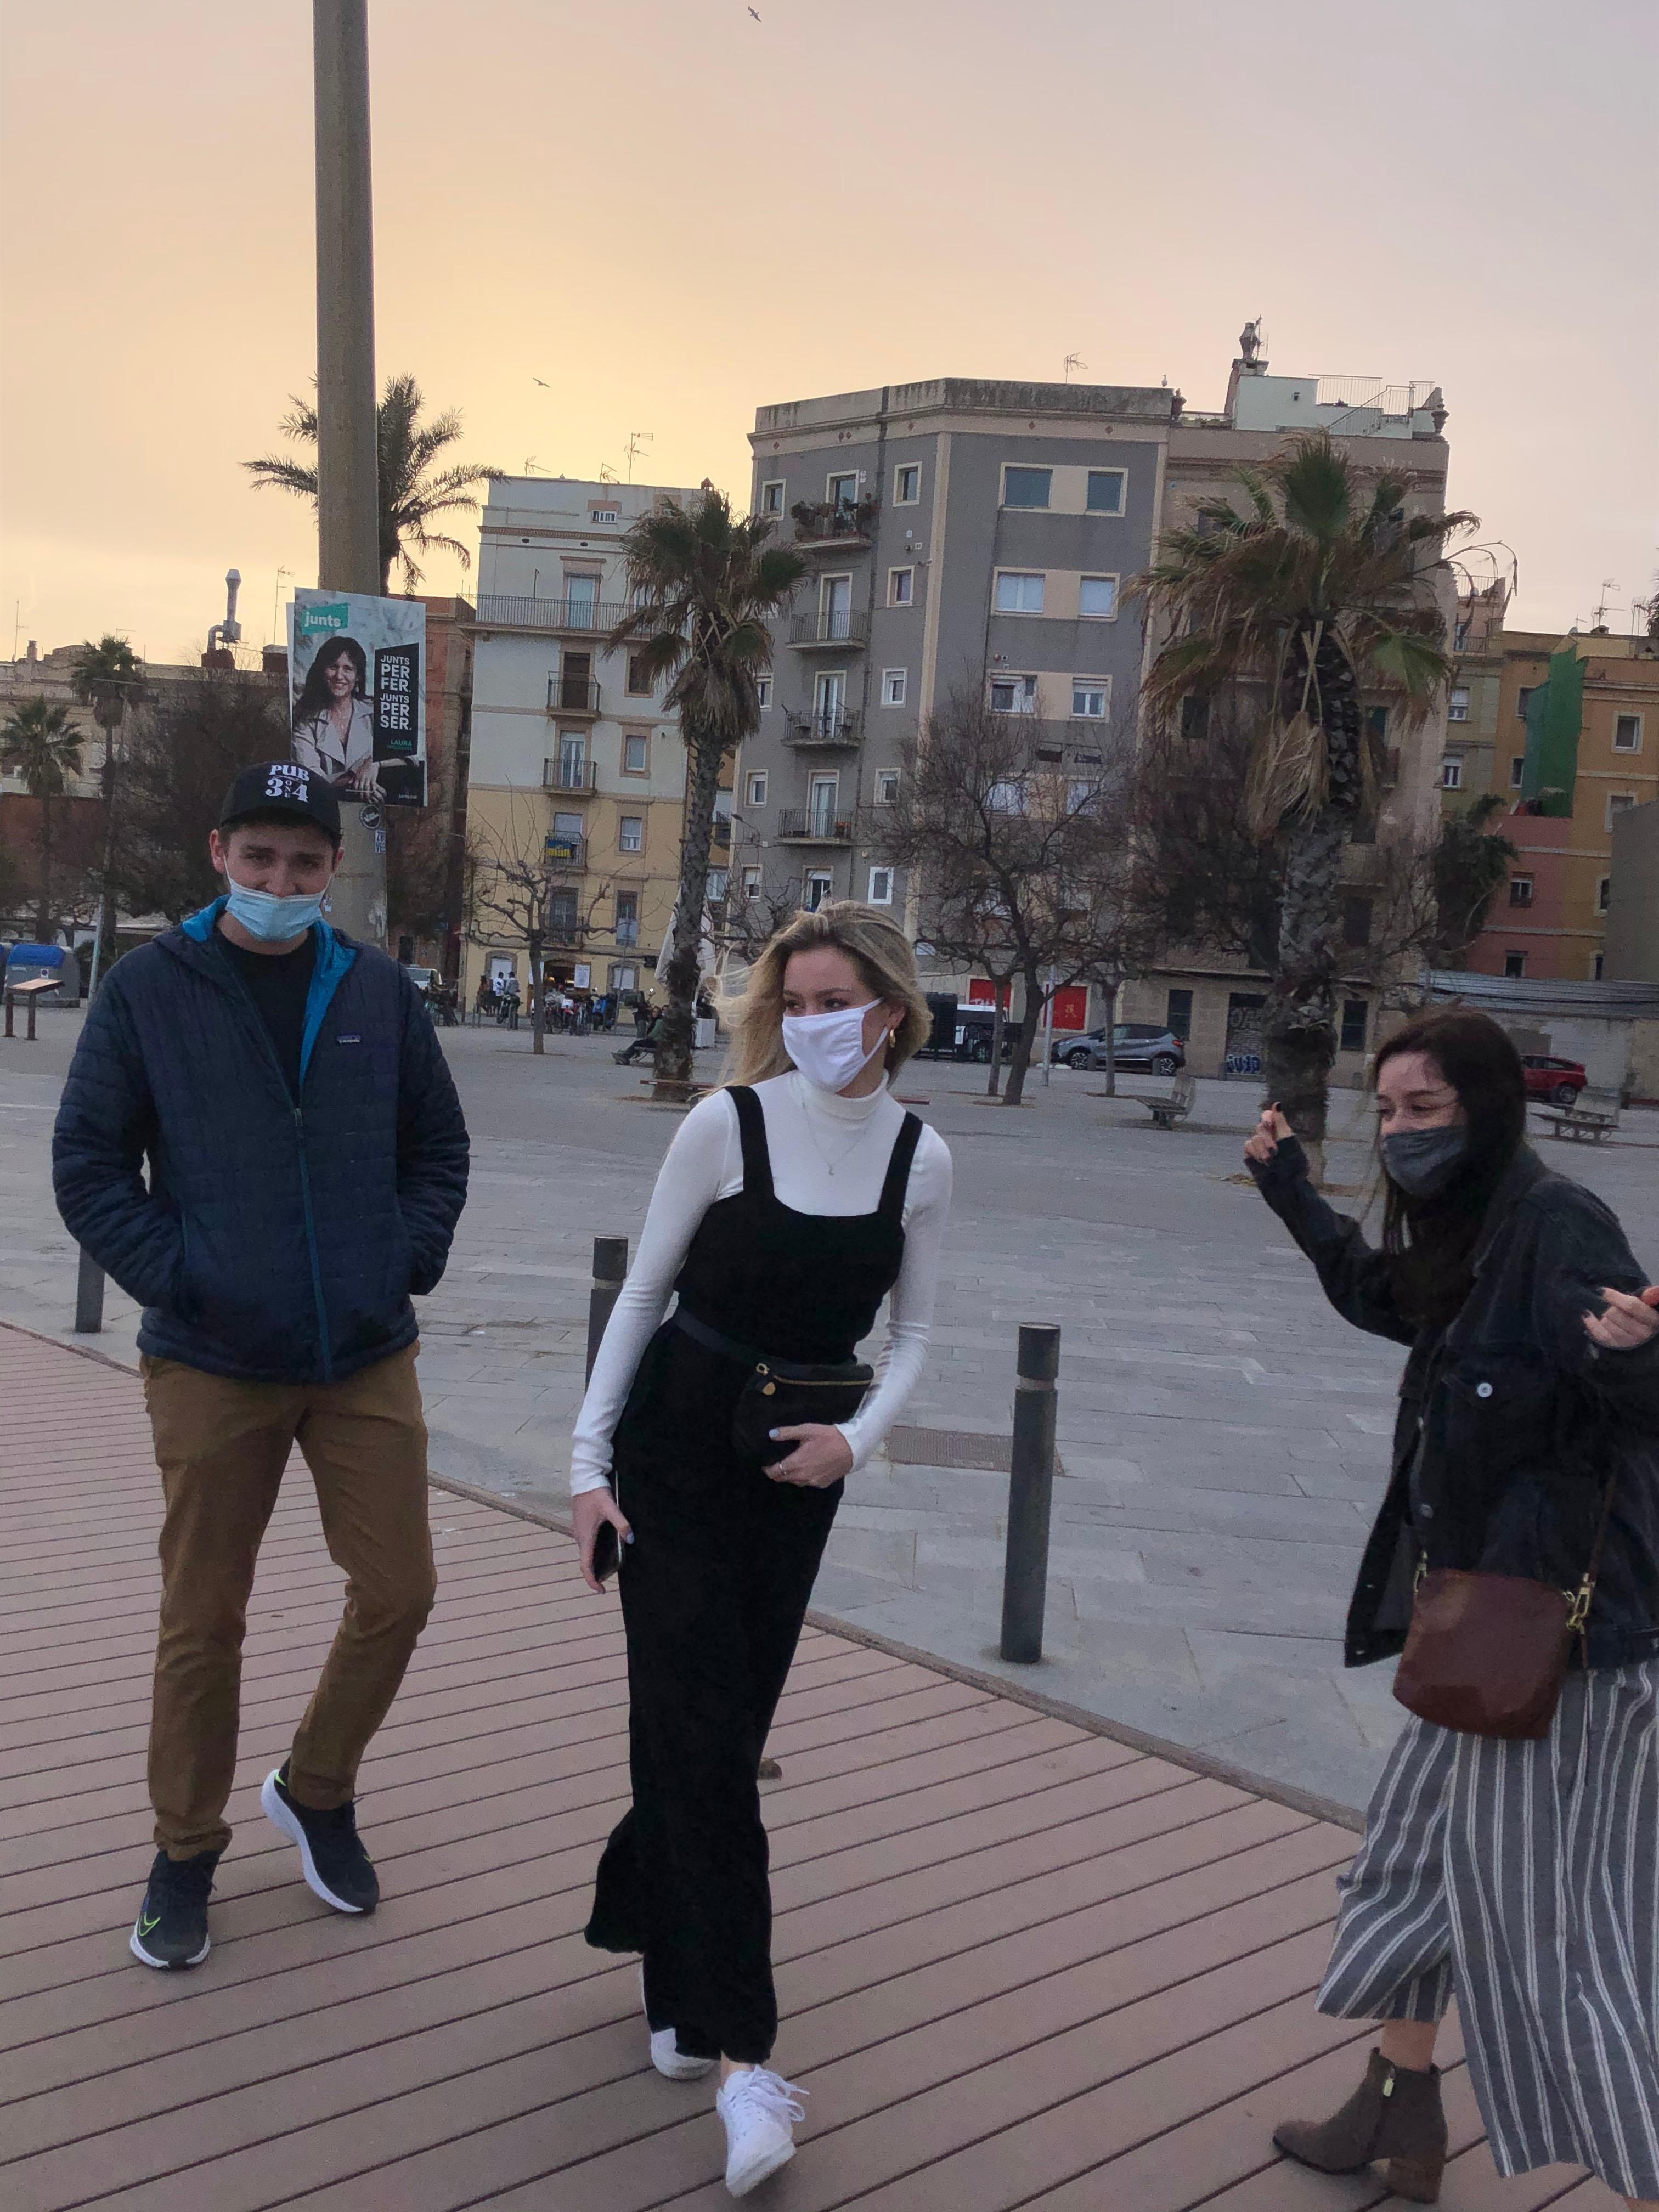 Exploring Barcelona with friends.